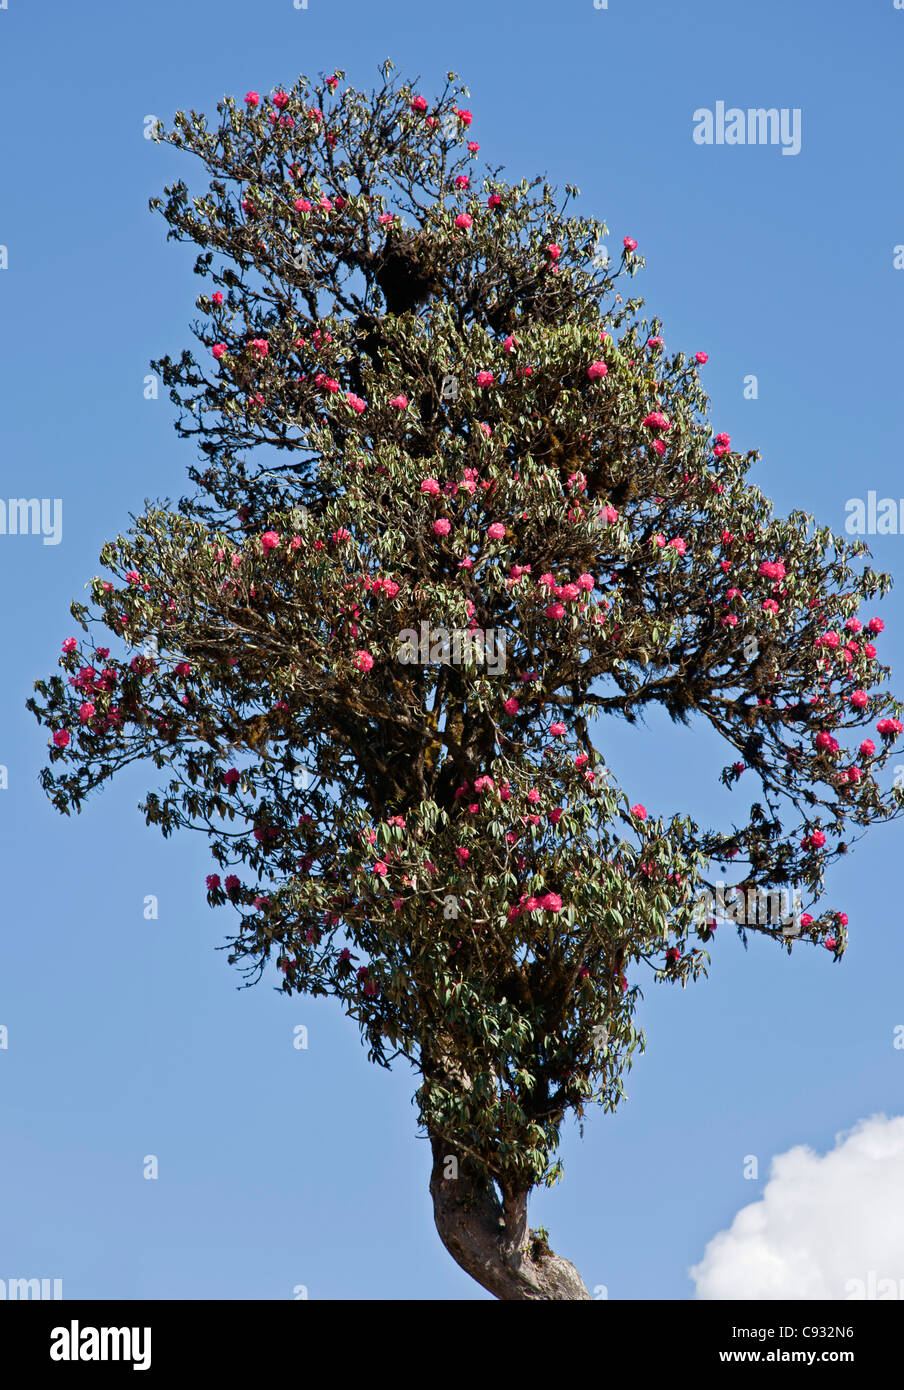 A magnificent old rhododendron tree at the 3,000-metres-high Dochu La Pass. - Stock Image